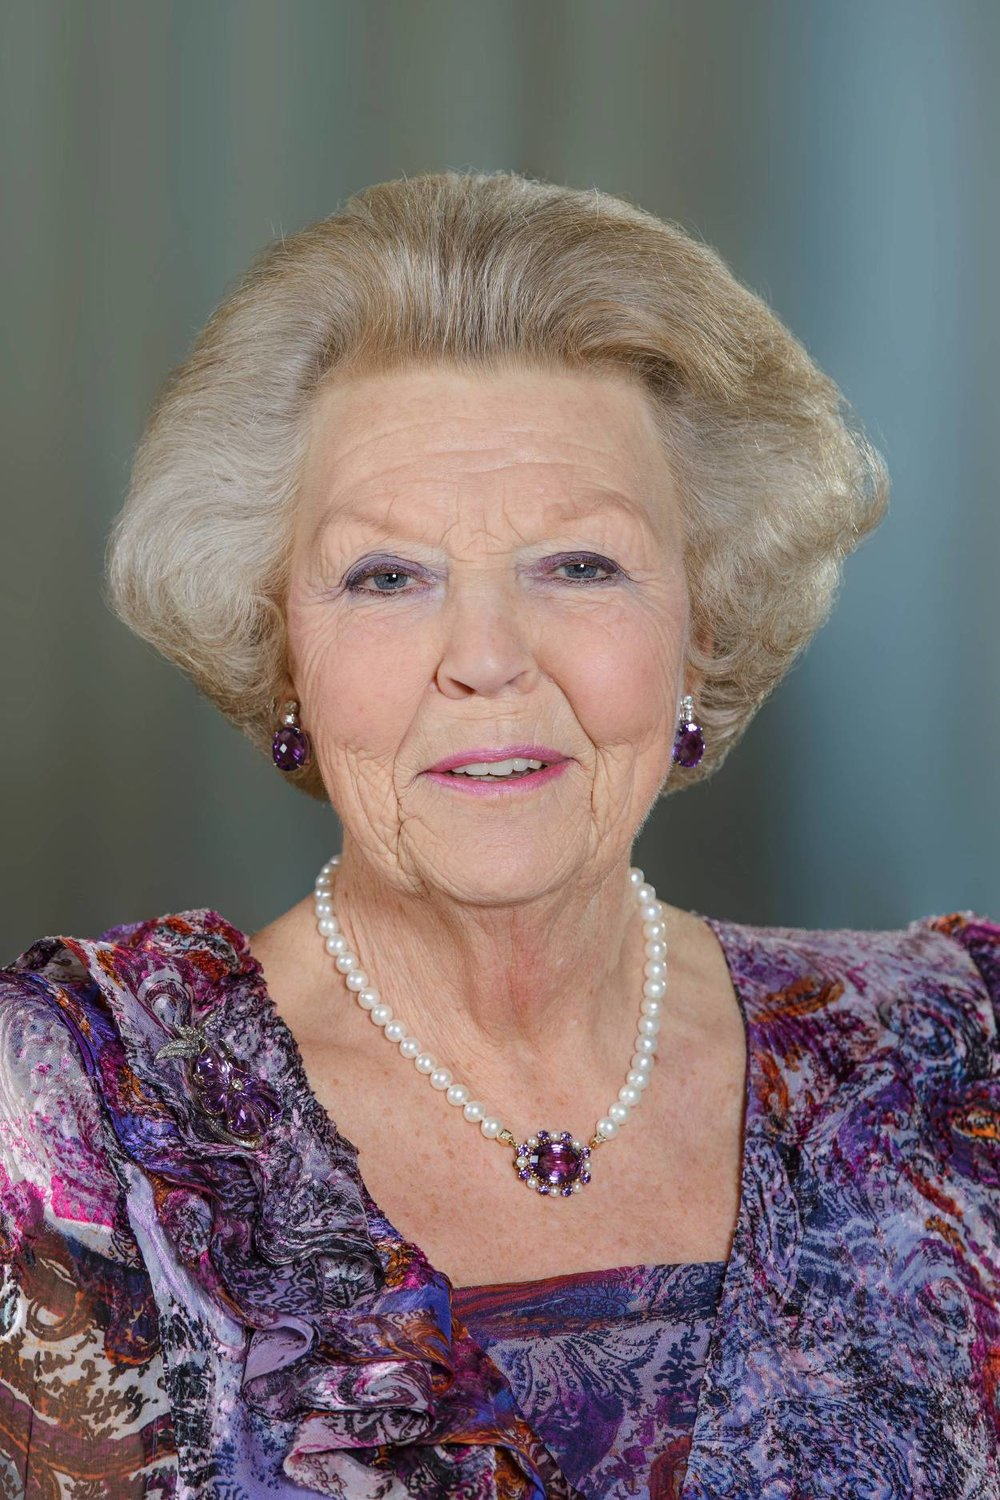 Princess Beatrix - Beatrix Wilhelmina Armgard was born to then Princess Juliana and Prince Bernhard of the Netherlands on January 31, 1938, in Soestdijk Palace. She has three sisters: Princesses Irene, Margriet and Christina. She studied at Leiden University and with European and international organisations before earning a law degree in 1961. She married German diplomat Claus von Amsberg on March 10, 1966. They had three sons: King Willem-Alexander, Prince Friso and Prince Constantijn. She became Queen of the Netherlands upon the abdication of her mother on April 30, 1980. She, in turn, abdicated in favor of Willem-Alexander on April, 30, 2013. She reverted back to the title of Princess of the Netherlands upon his ascension.(Photo: Jeroen van der Meyde/RVD)